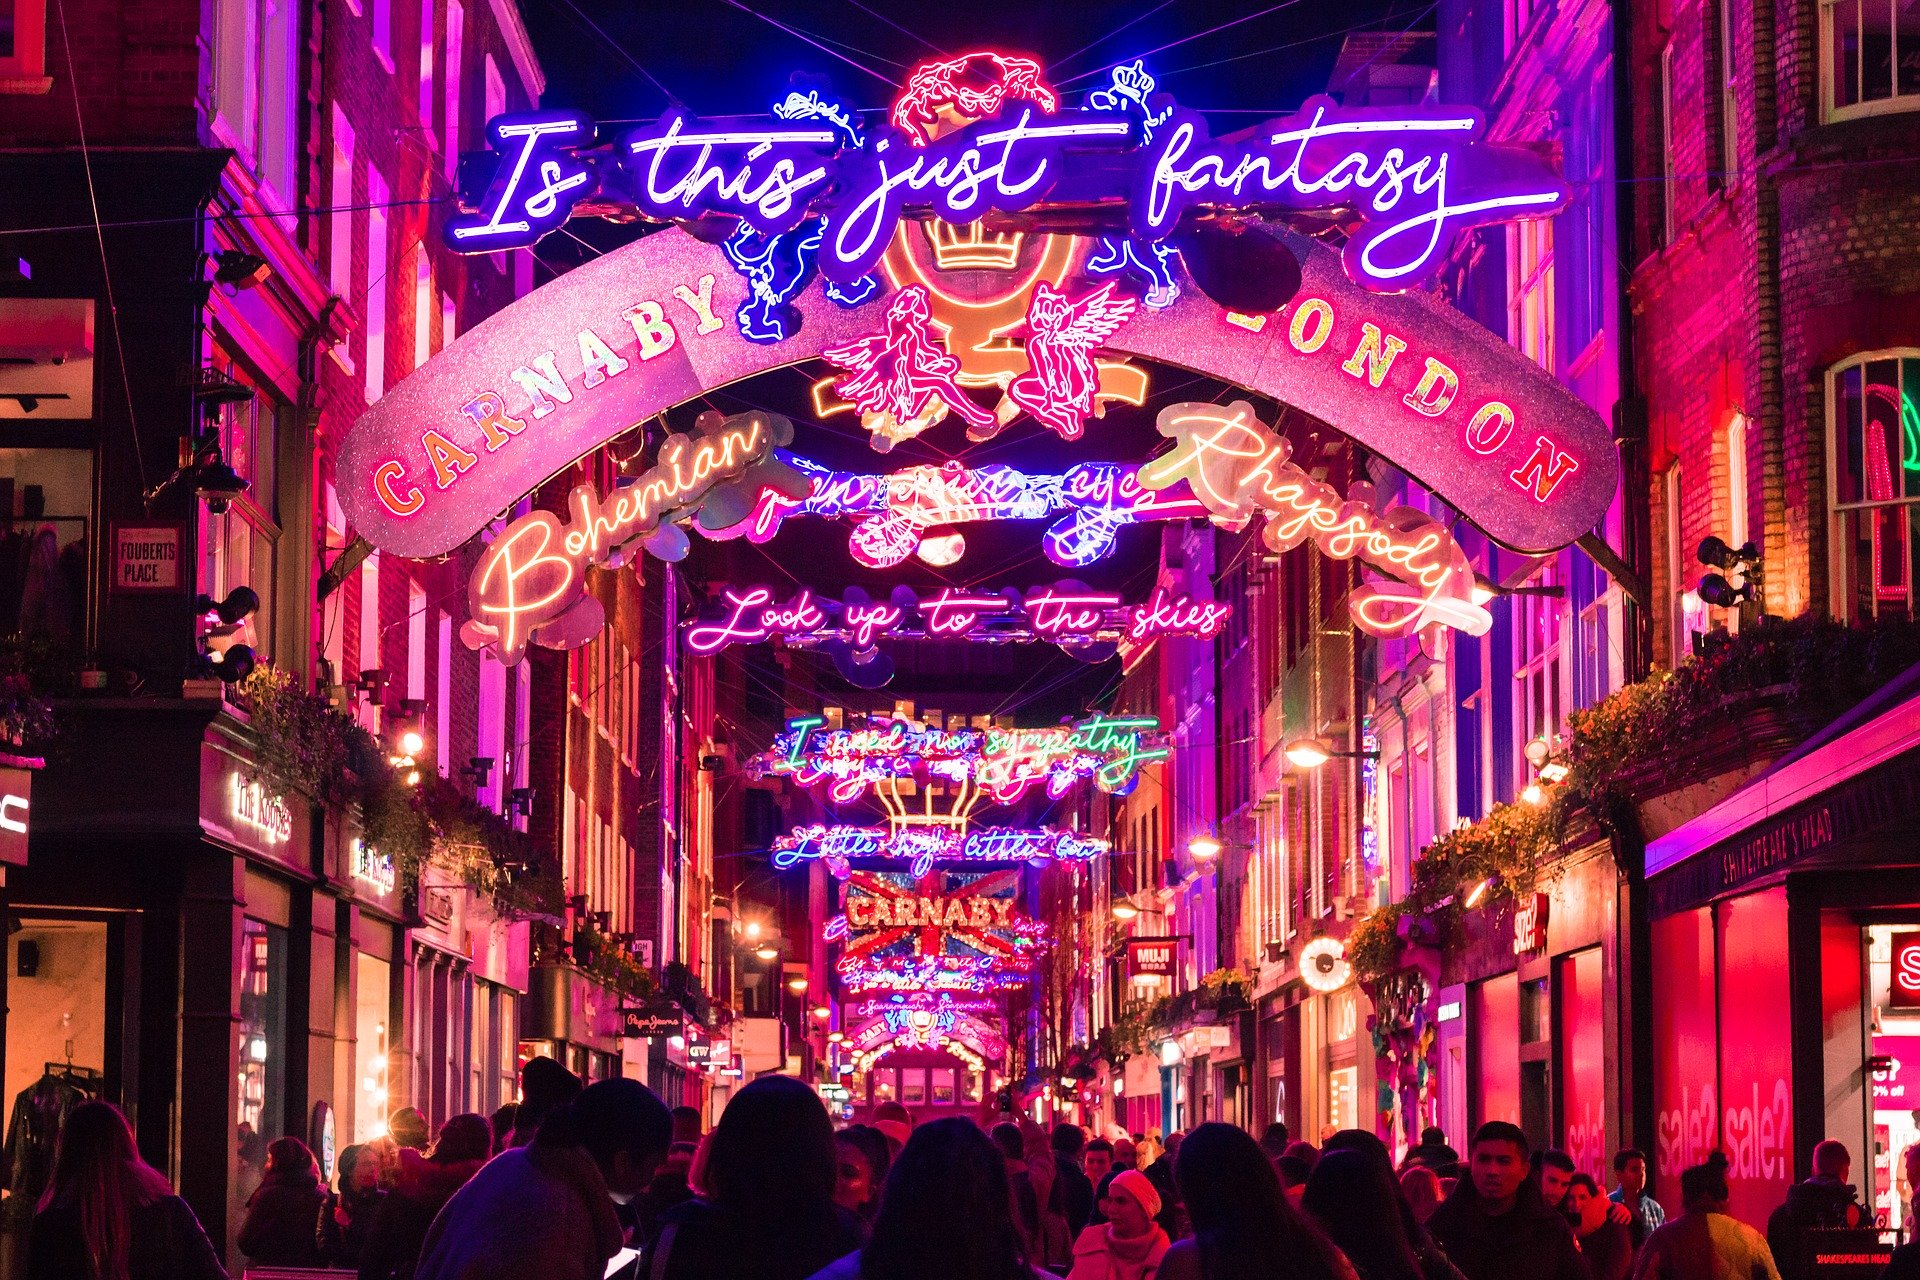 The Ultimate Guide to Christmas in London 2019